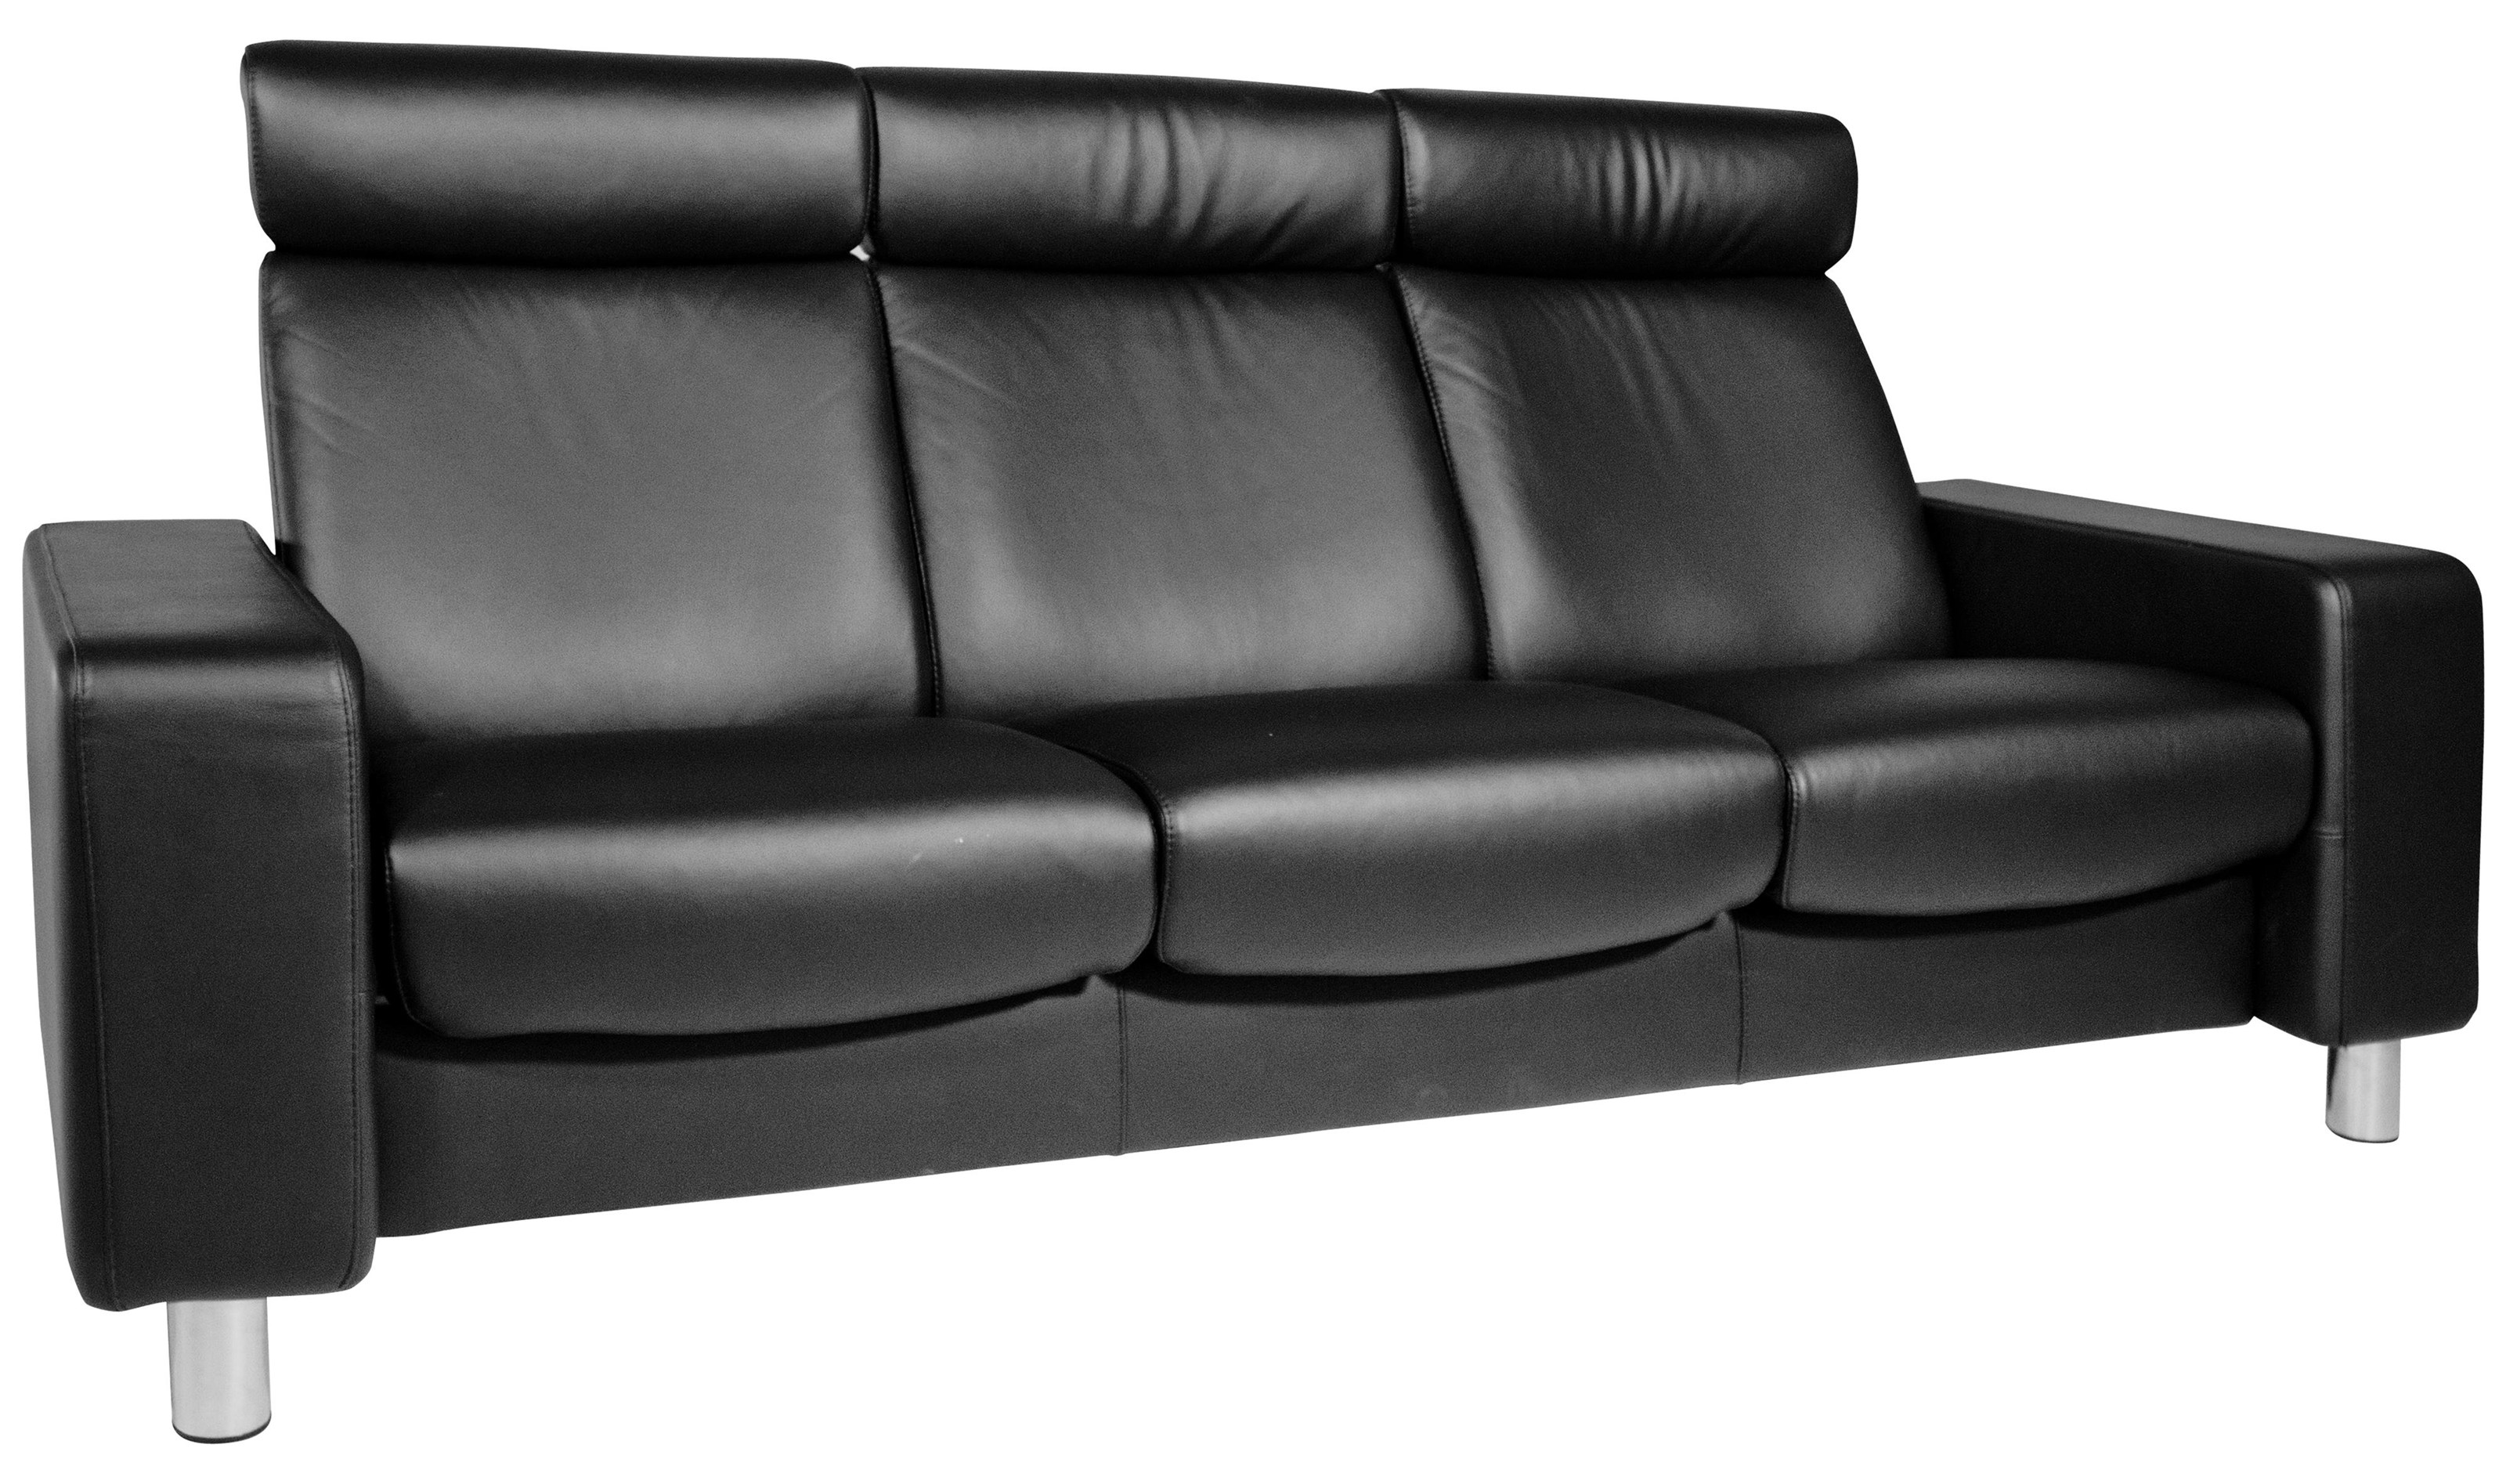 Stressless Sofa Adjustment Stressless Pause Reclining Sofa Abode Reclining Sofas